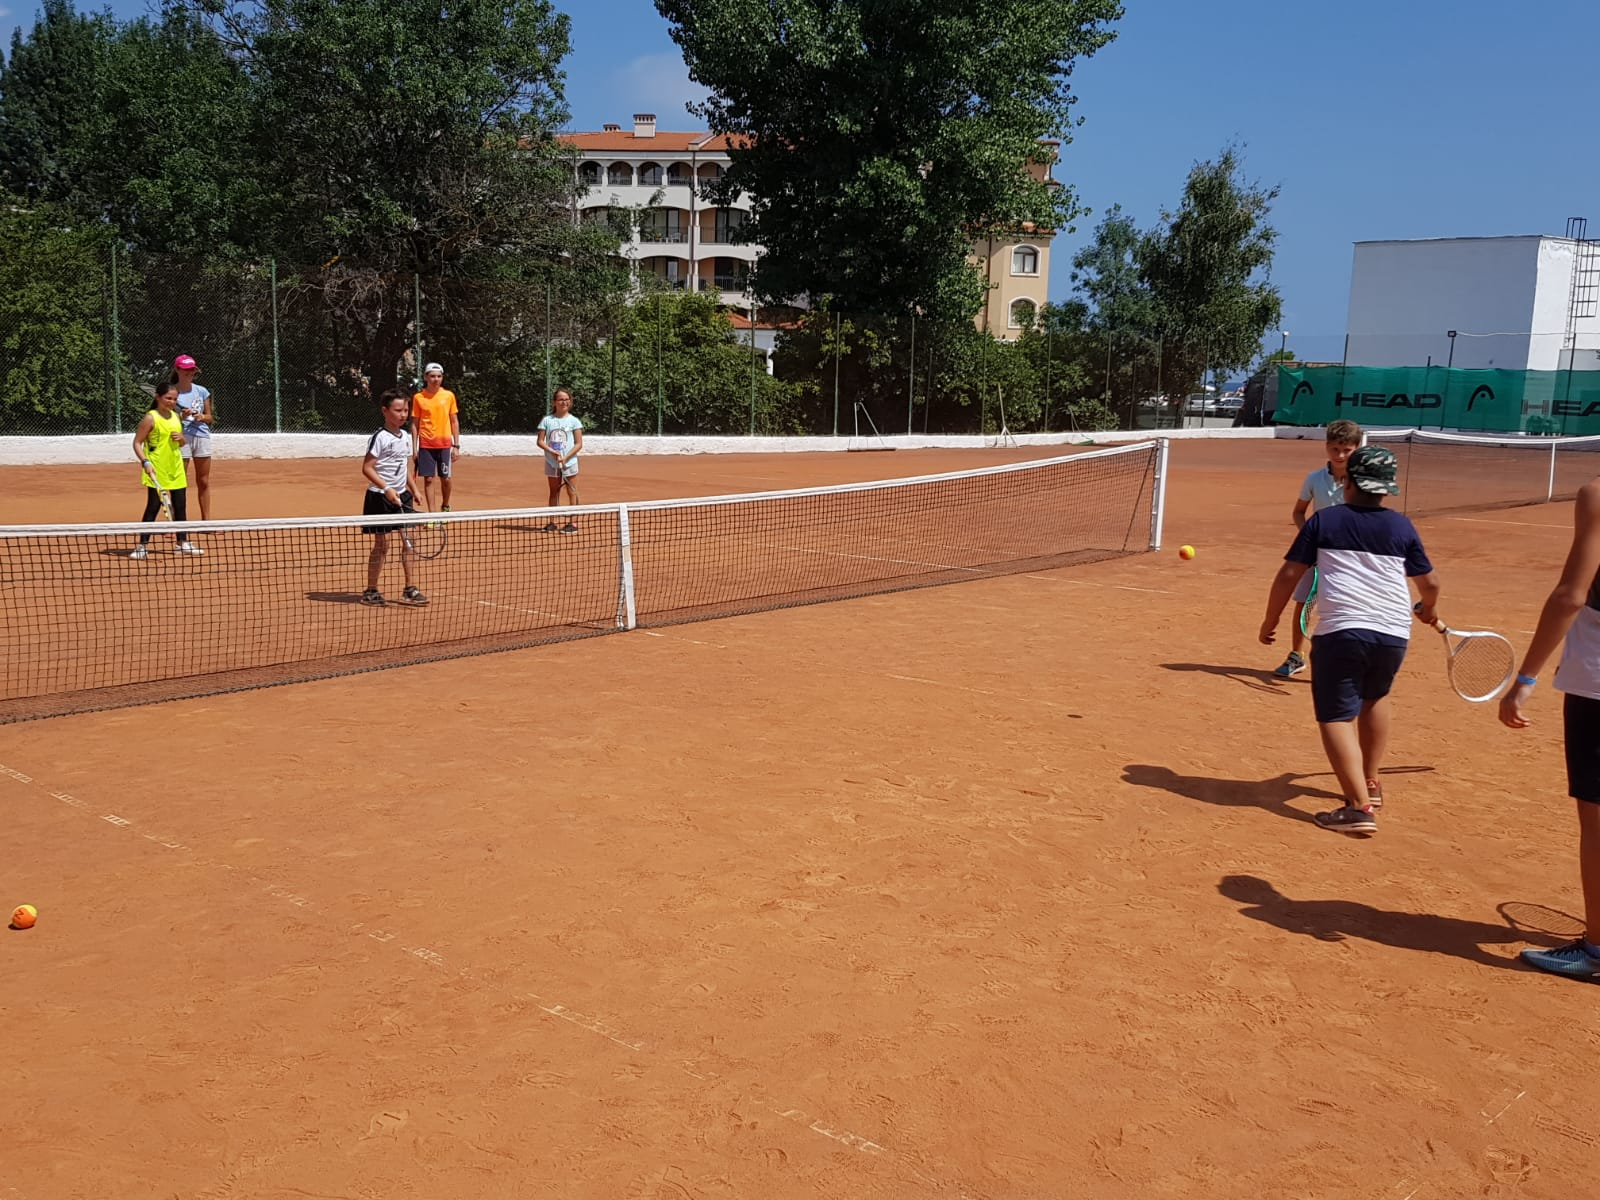 Z camp, day 14 - tennis court, group of children play